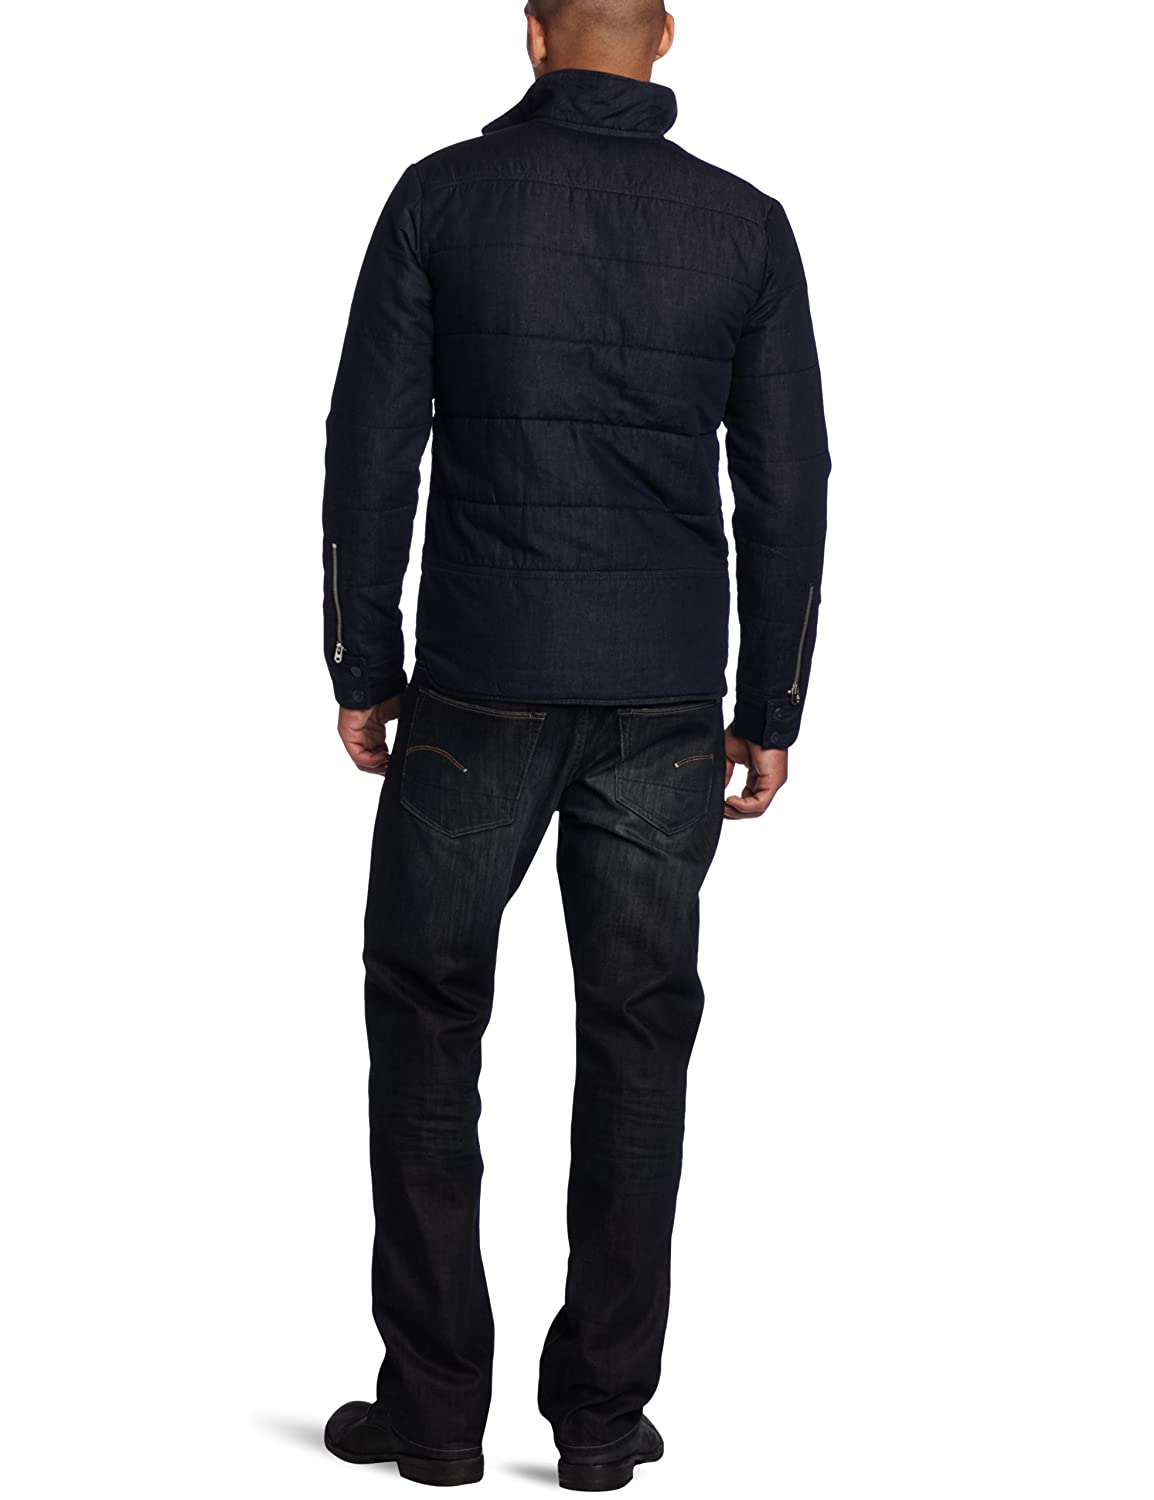 Park Long Sleeve Quilted Shirt G-Star Raw Mens S.O